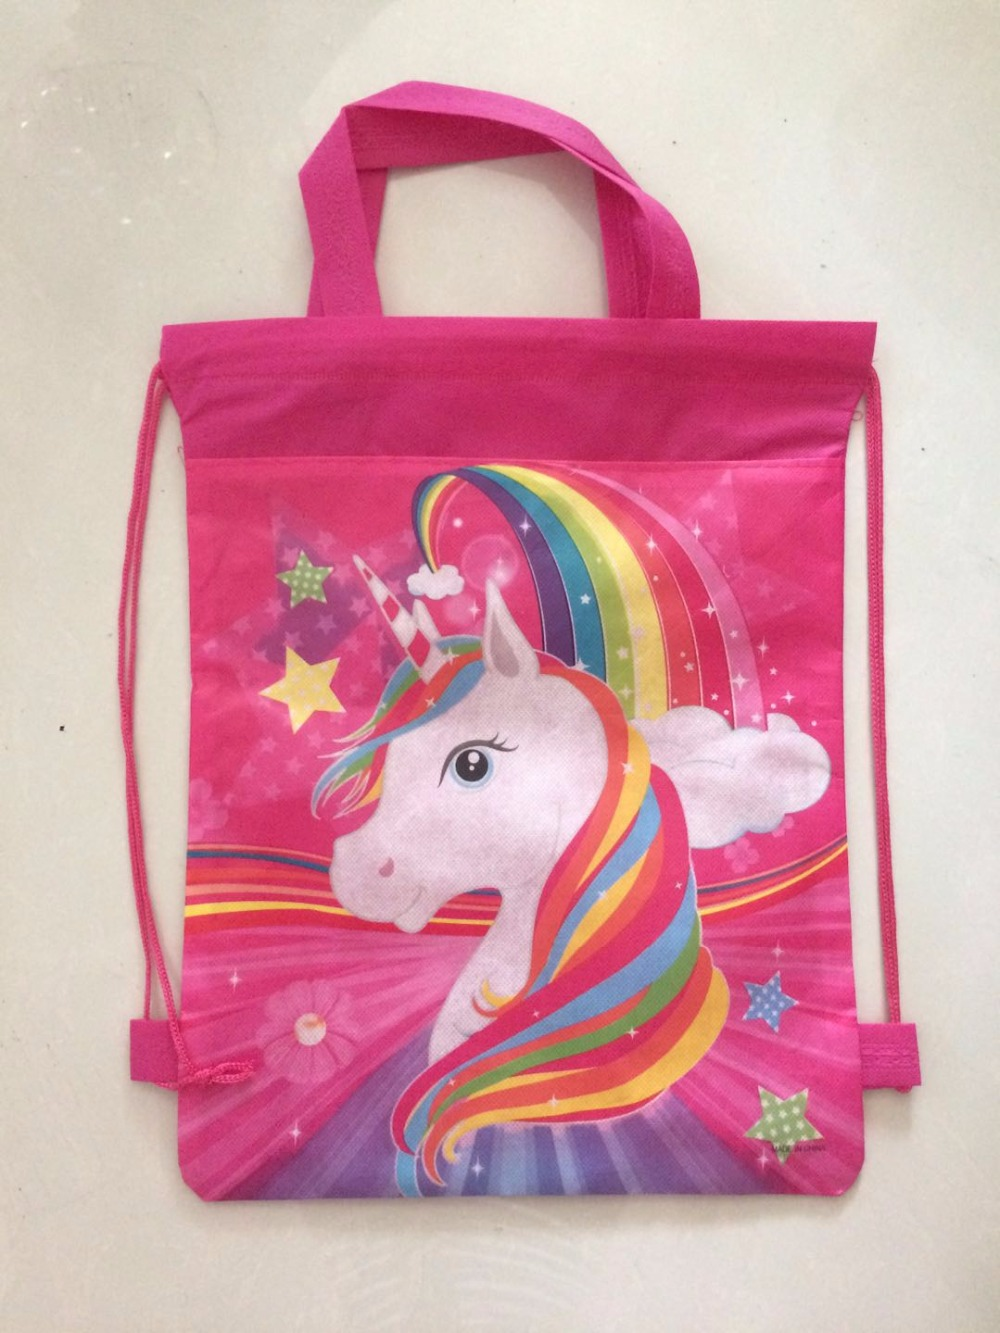 toddler backpack unicorn Backpack School Bag for runner , waterproof shoe bag for kids gift birthday gift stuff supplies zoo animal sweetheart backpack toddler pouch non woven string shoe shourlder school bag for boy and girls birthday party gift